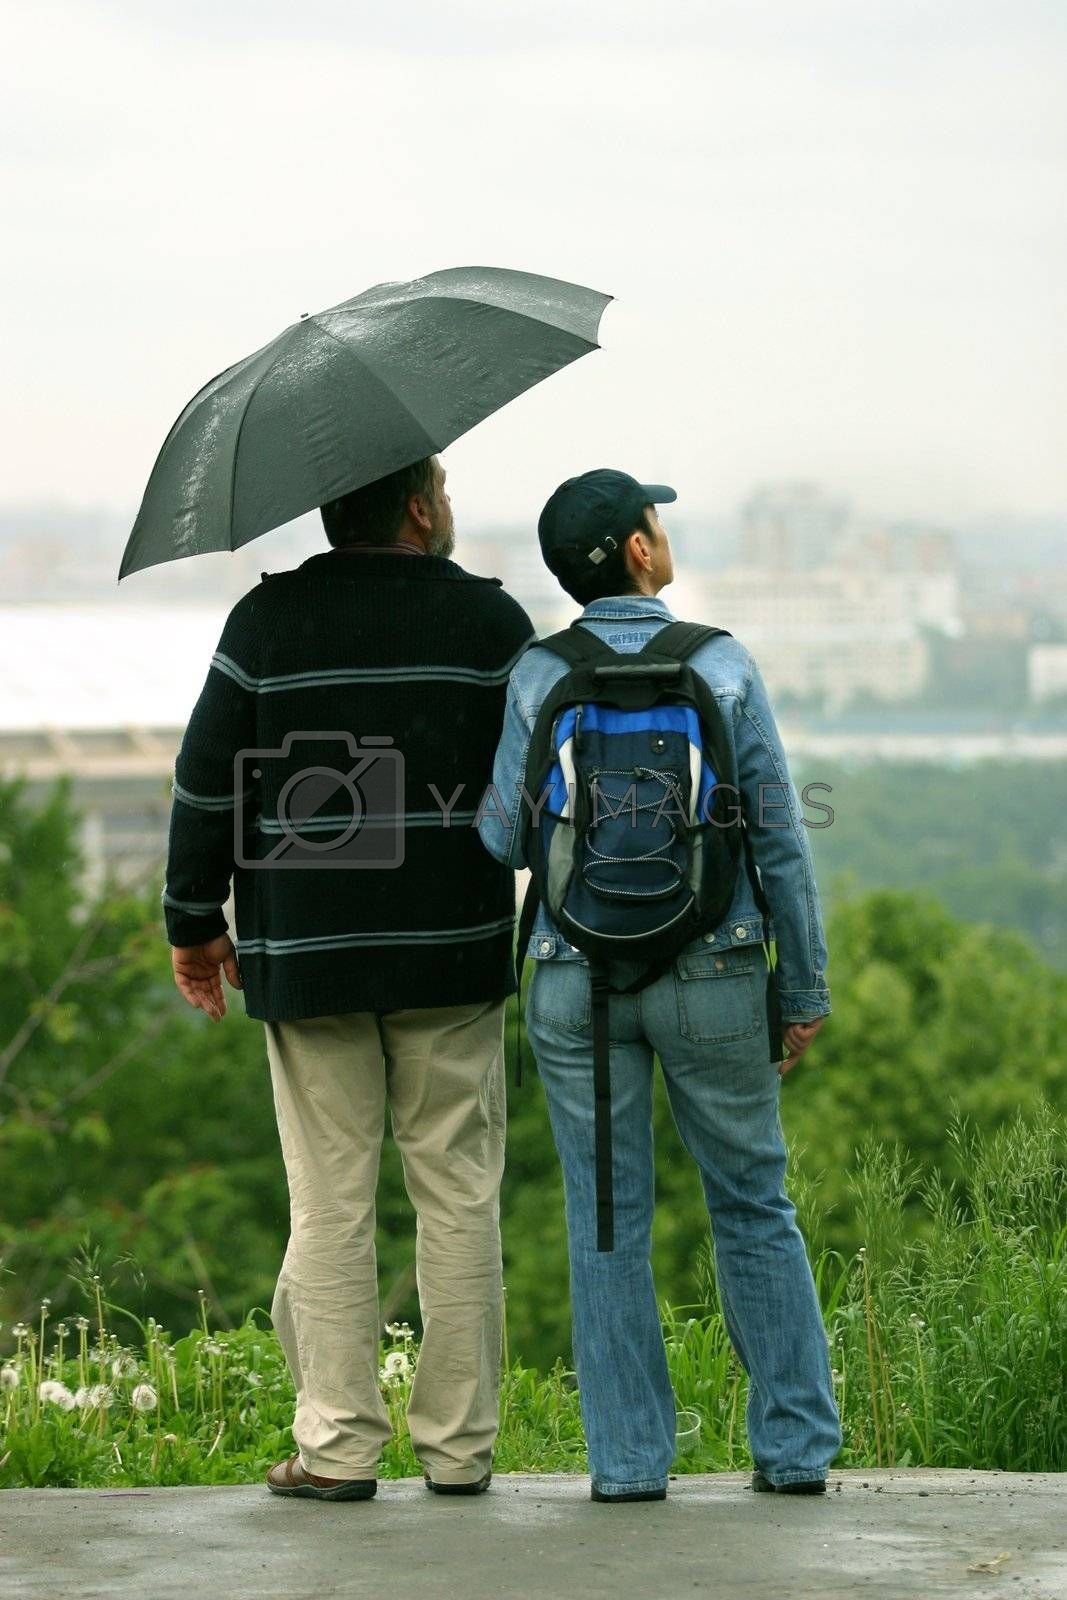 The man and the woman under a umbrella